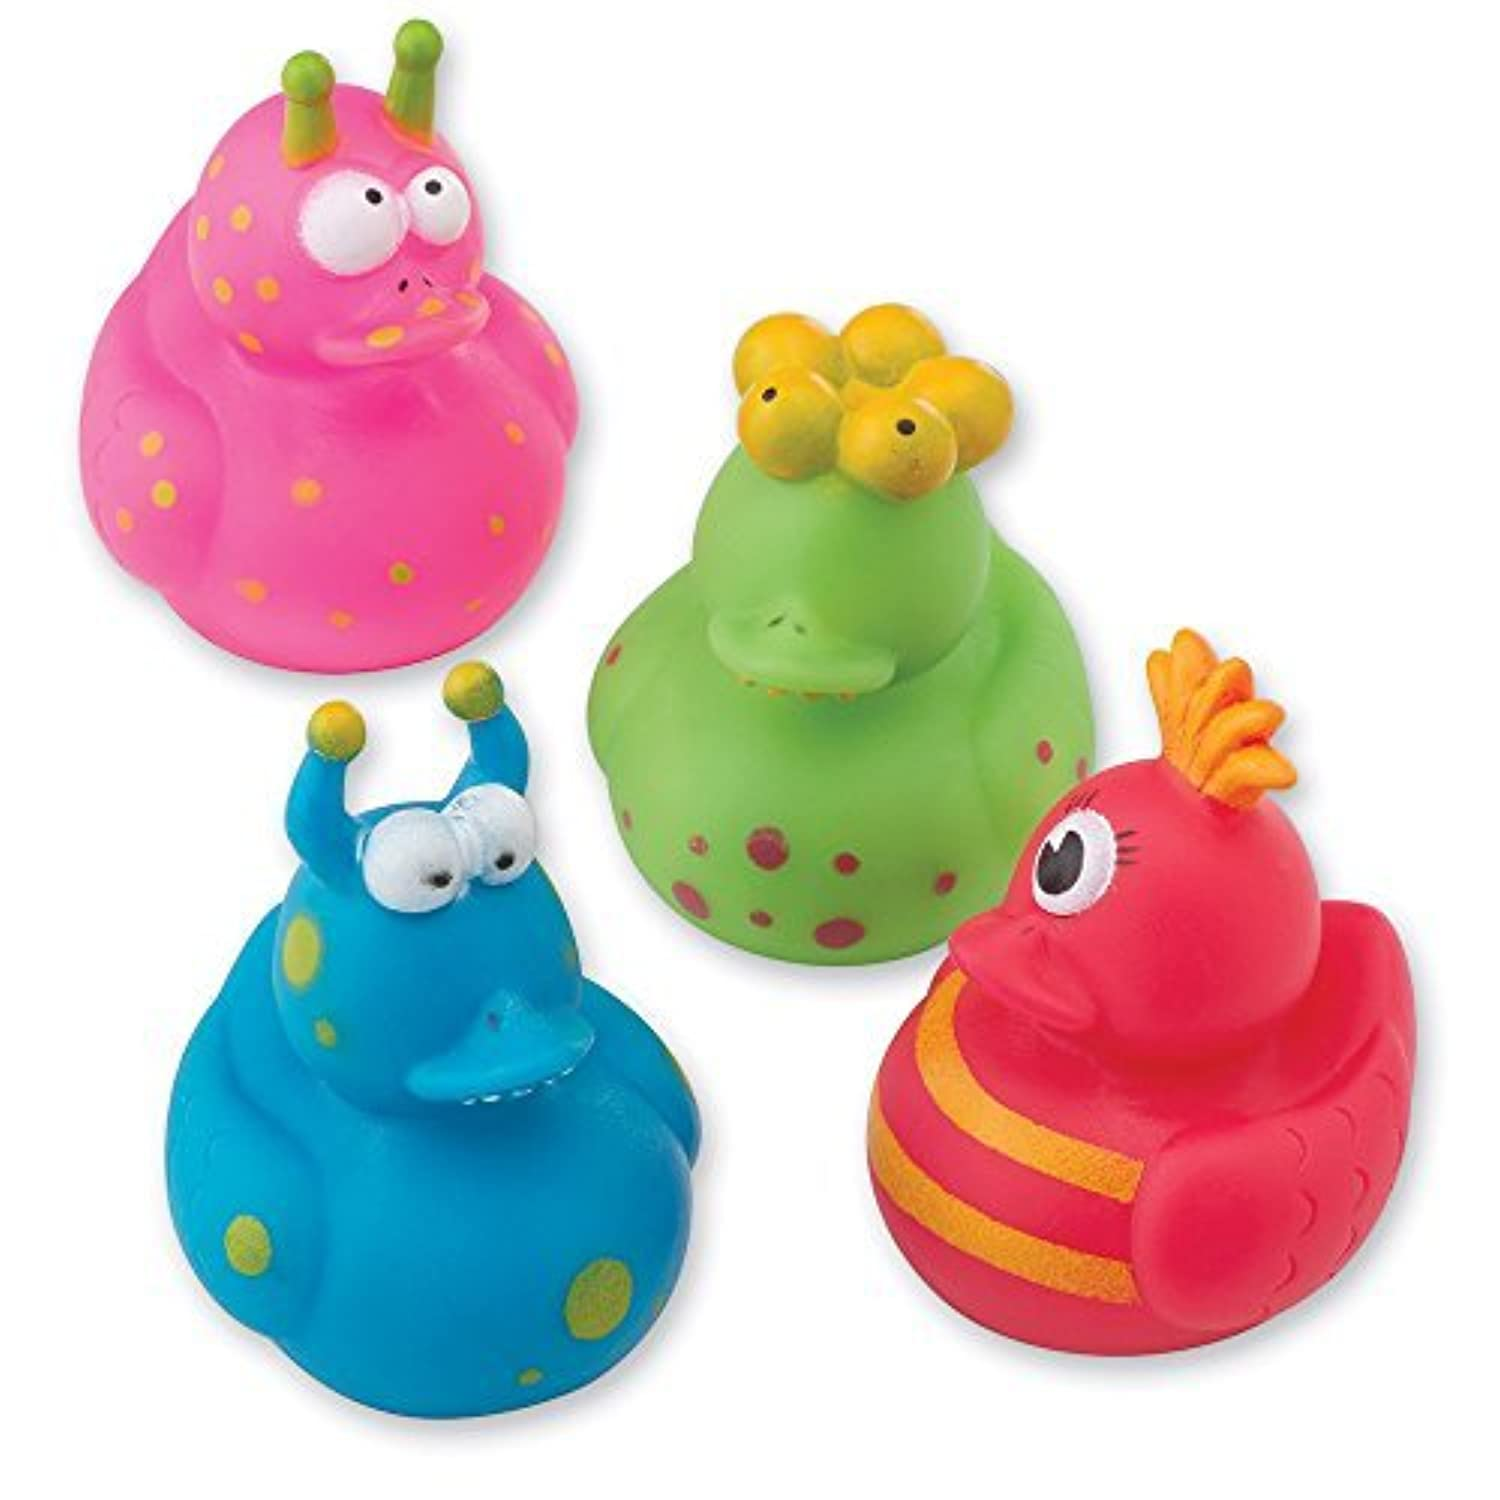 Monster Rubber Duck Squirters - Toy Giveaways - 24 per pack by SmileMakers [並行輸入品]